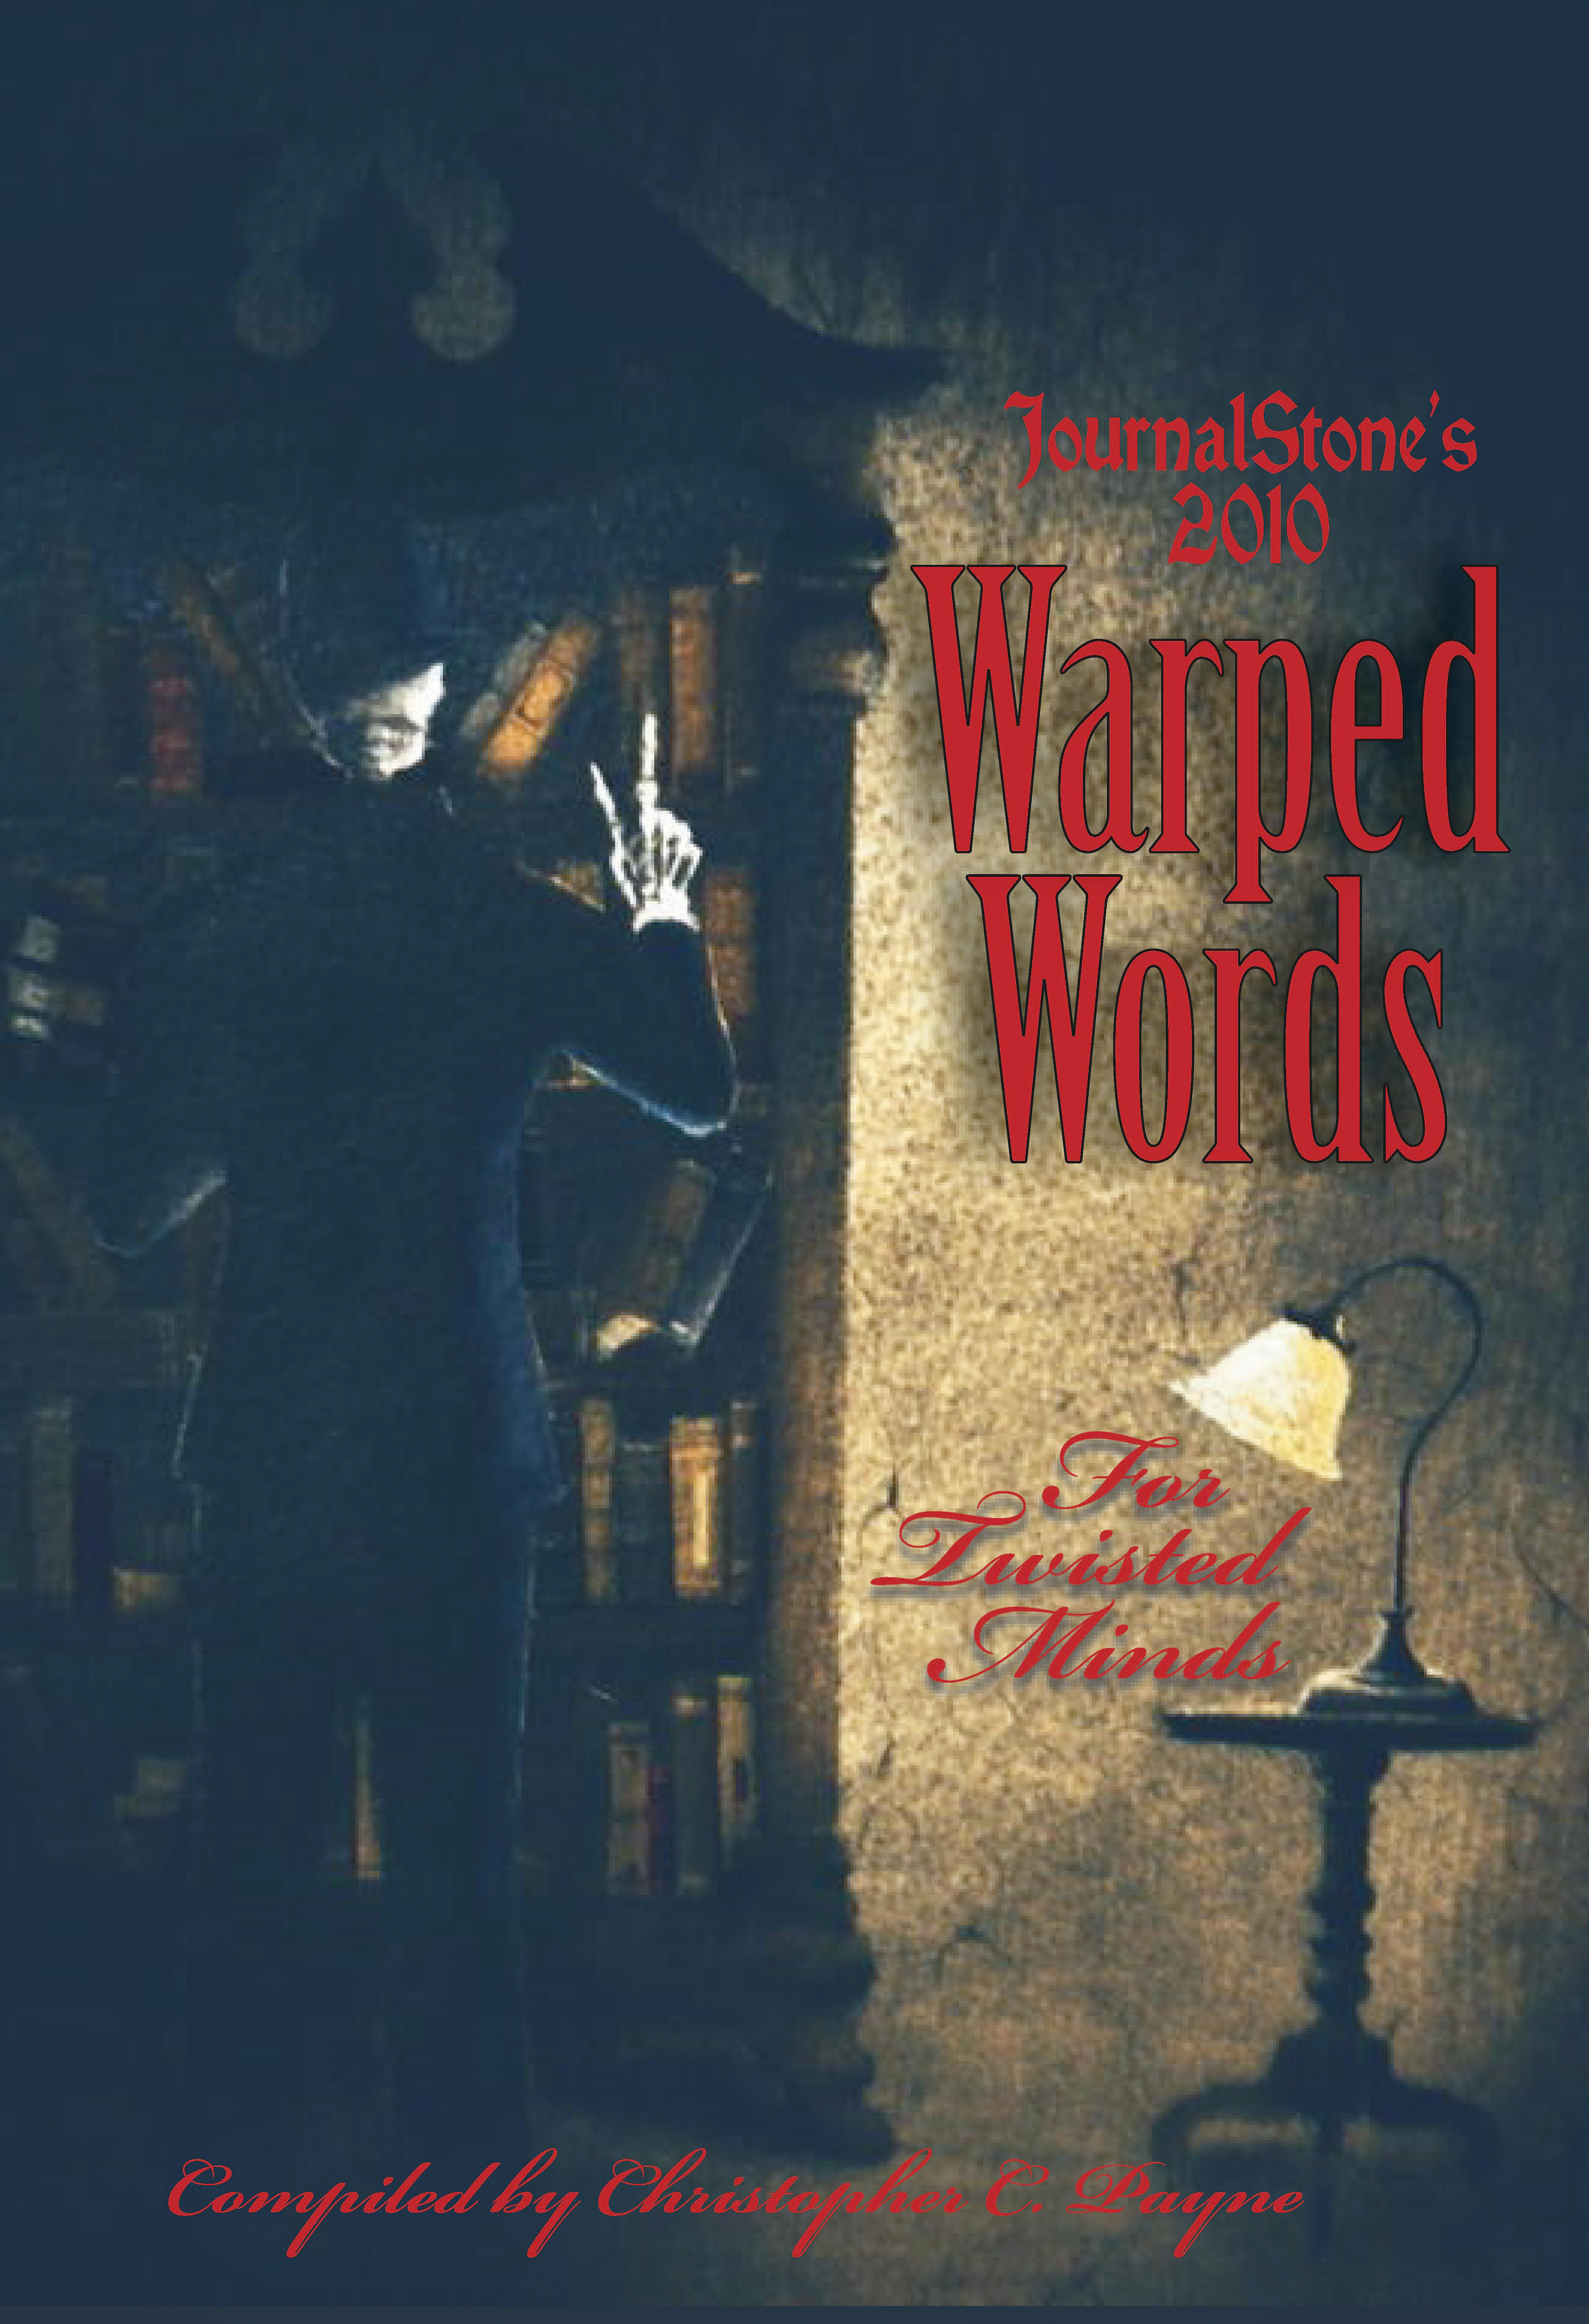 JournalStone's 2010 Warped Words, For Twisted Minds EB9781936564026